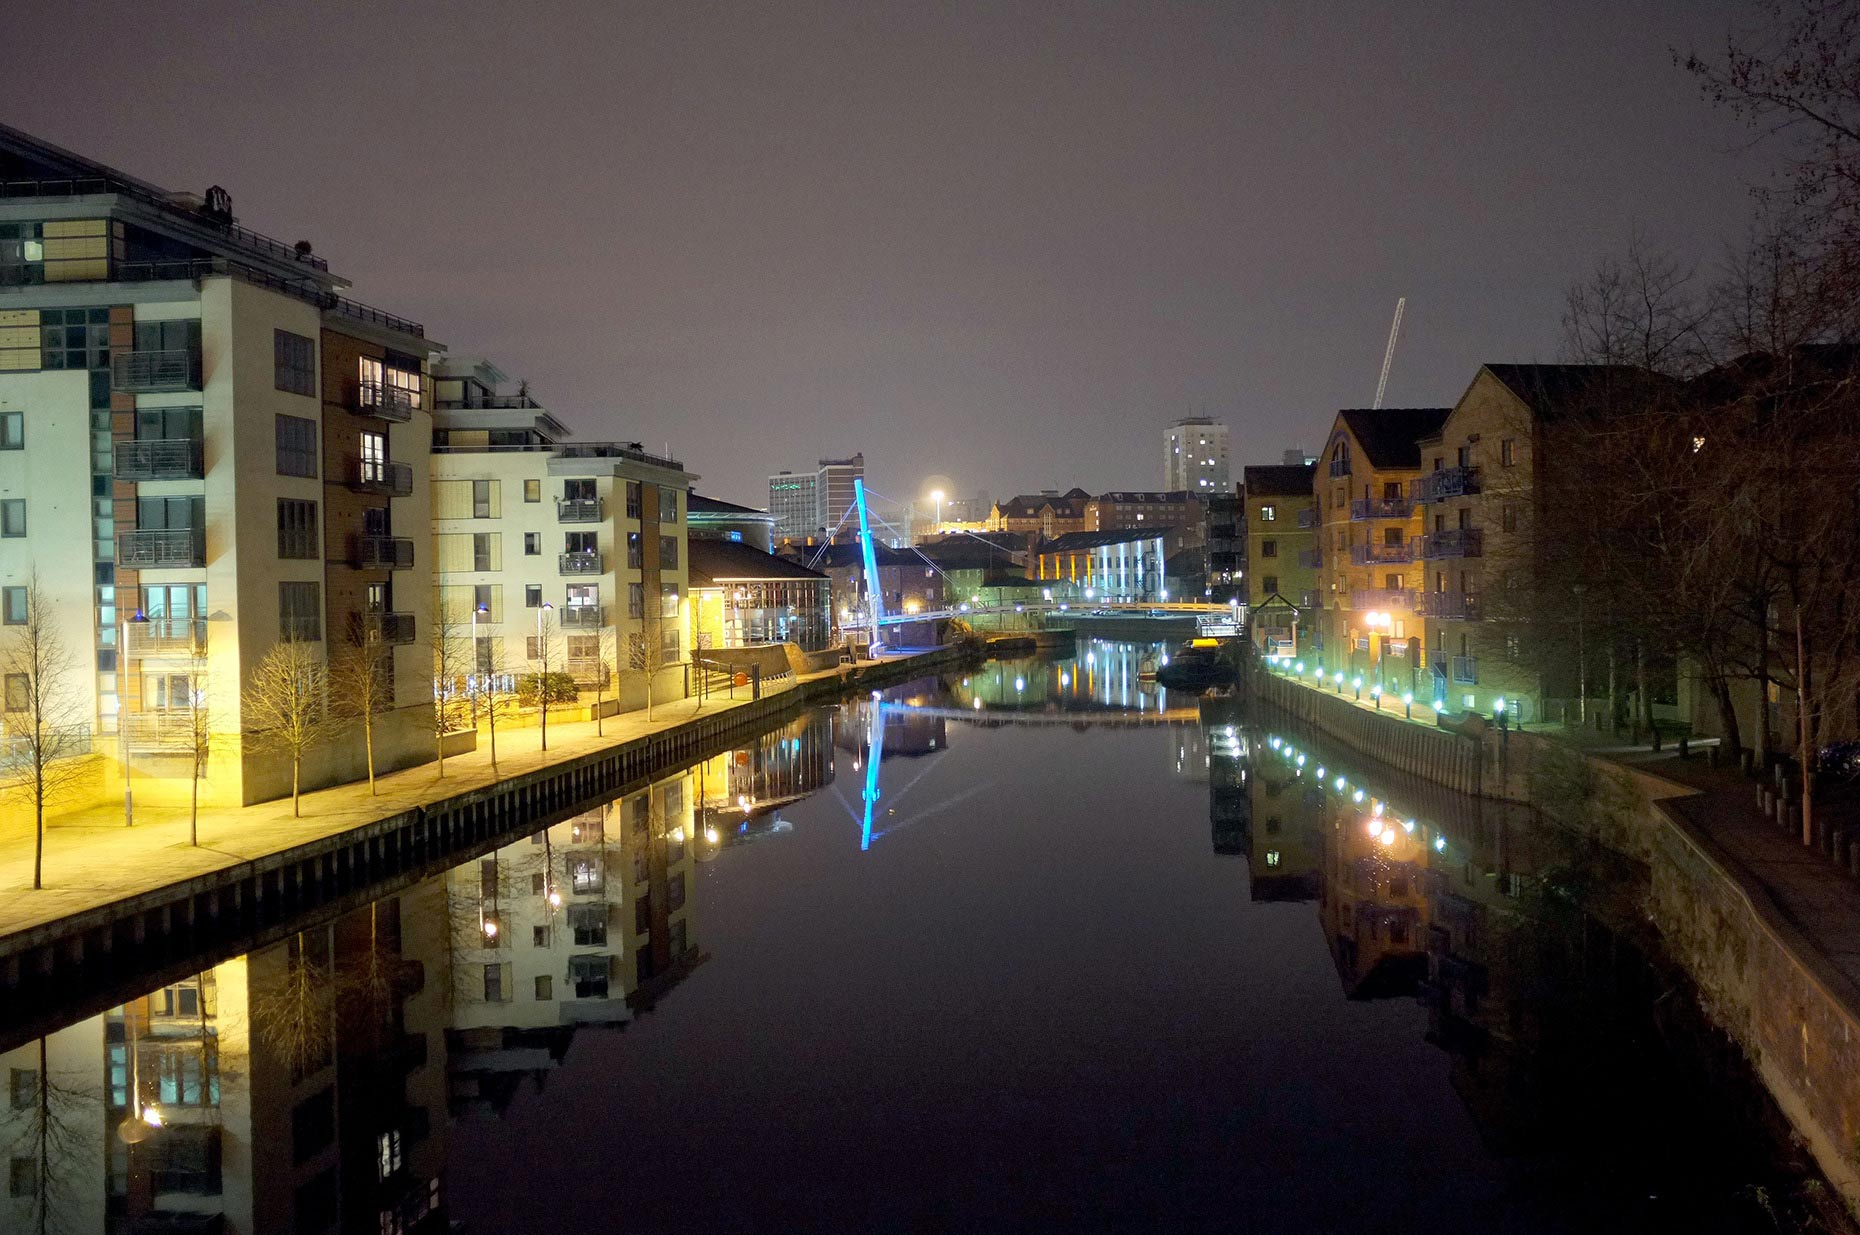 Cities at Night - Salford